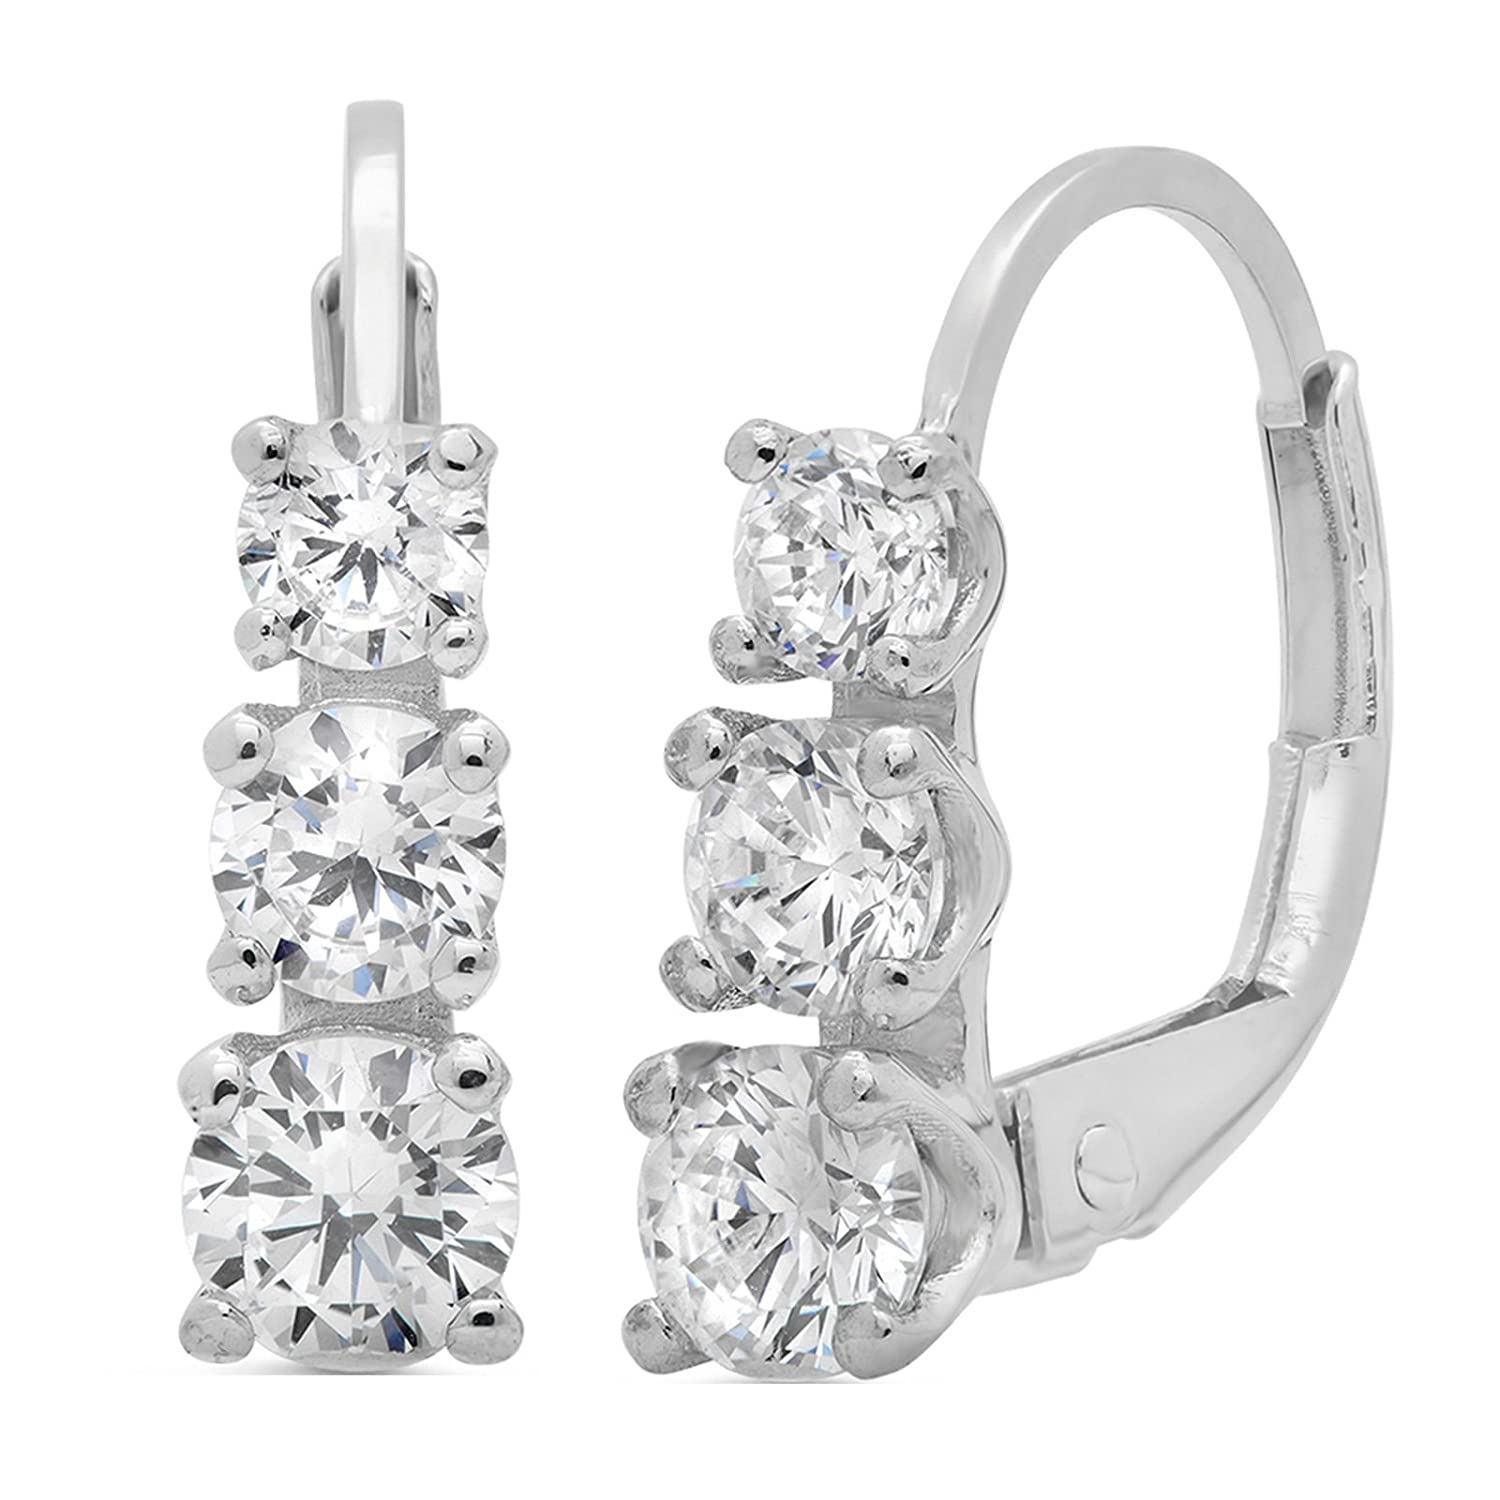 Clara Pucci 2.40 CT 3 Stone ROUND CUT Earrings 14K White Gold Past Present Future Leverback